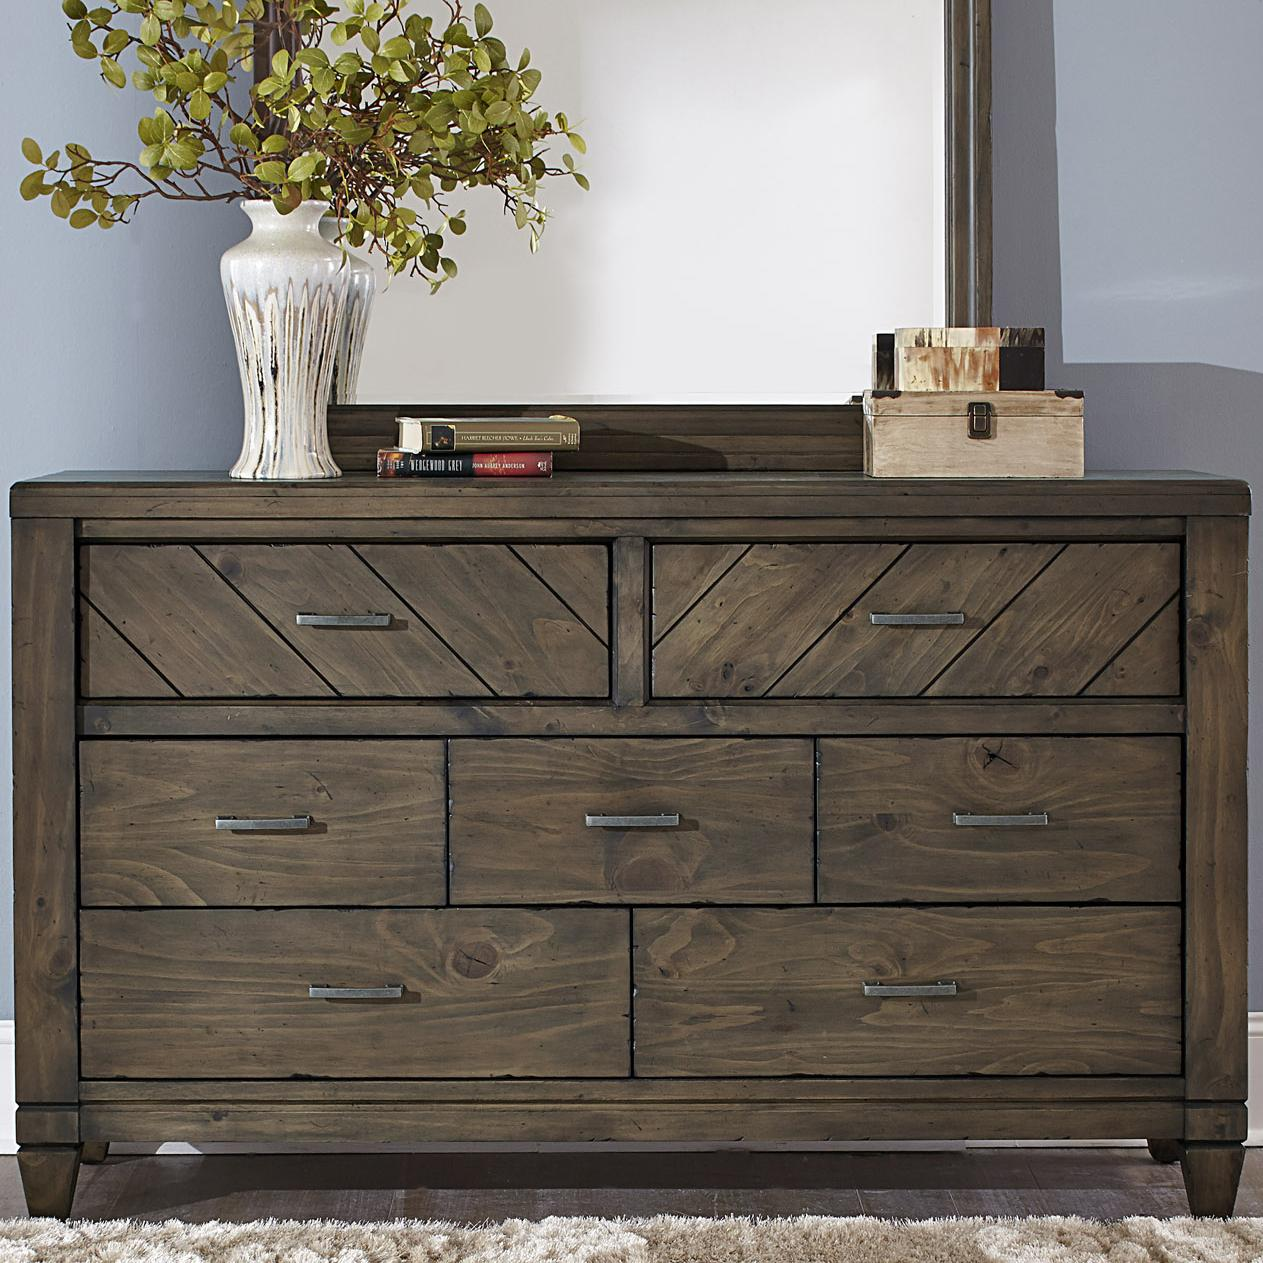 Liberty Furniture Modern Country 7 Drawer Dresser - Item Number: 833-BR31